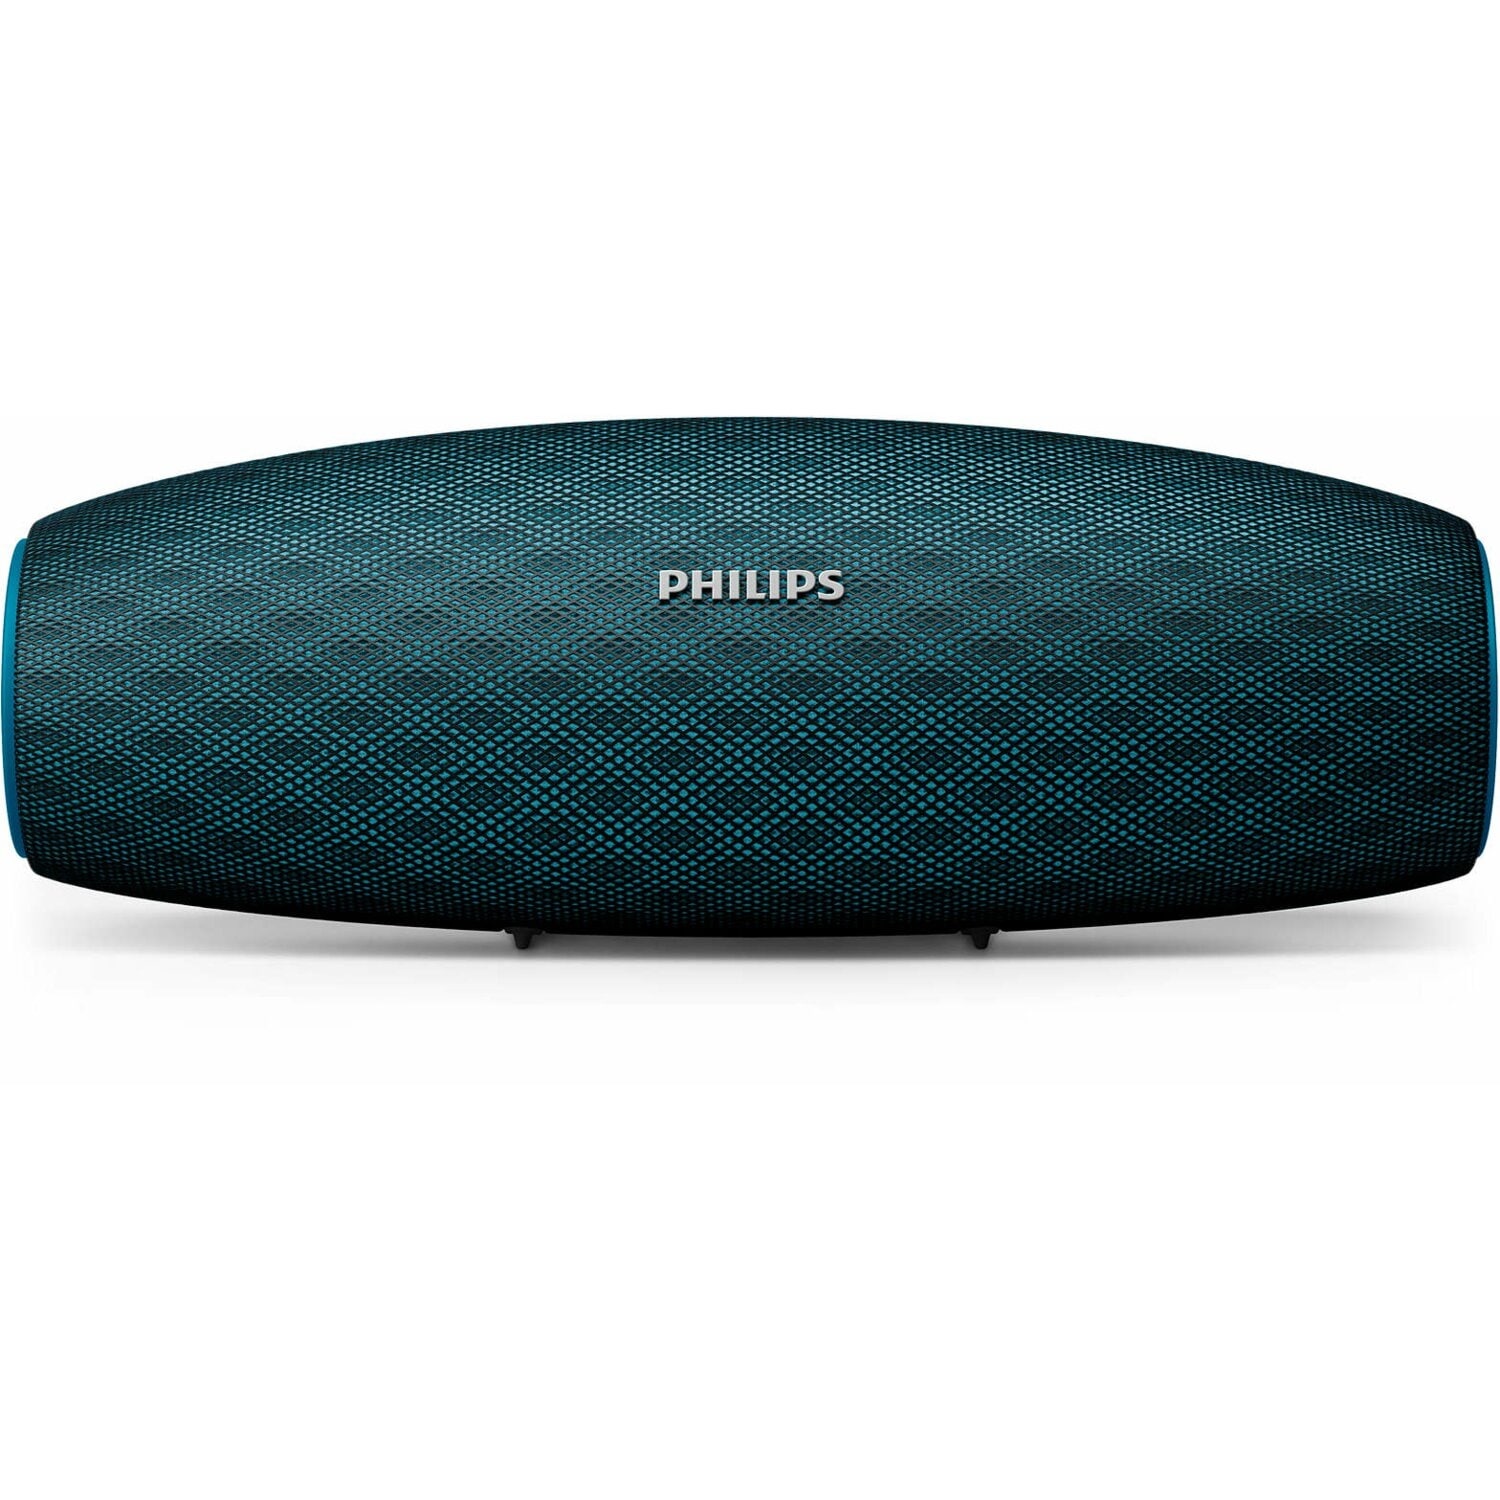 Głośnik Bluetooth PHILIPS BT7900A/00 Zielony